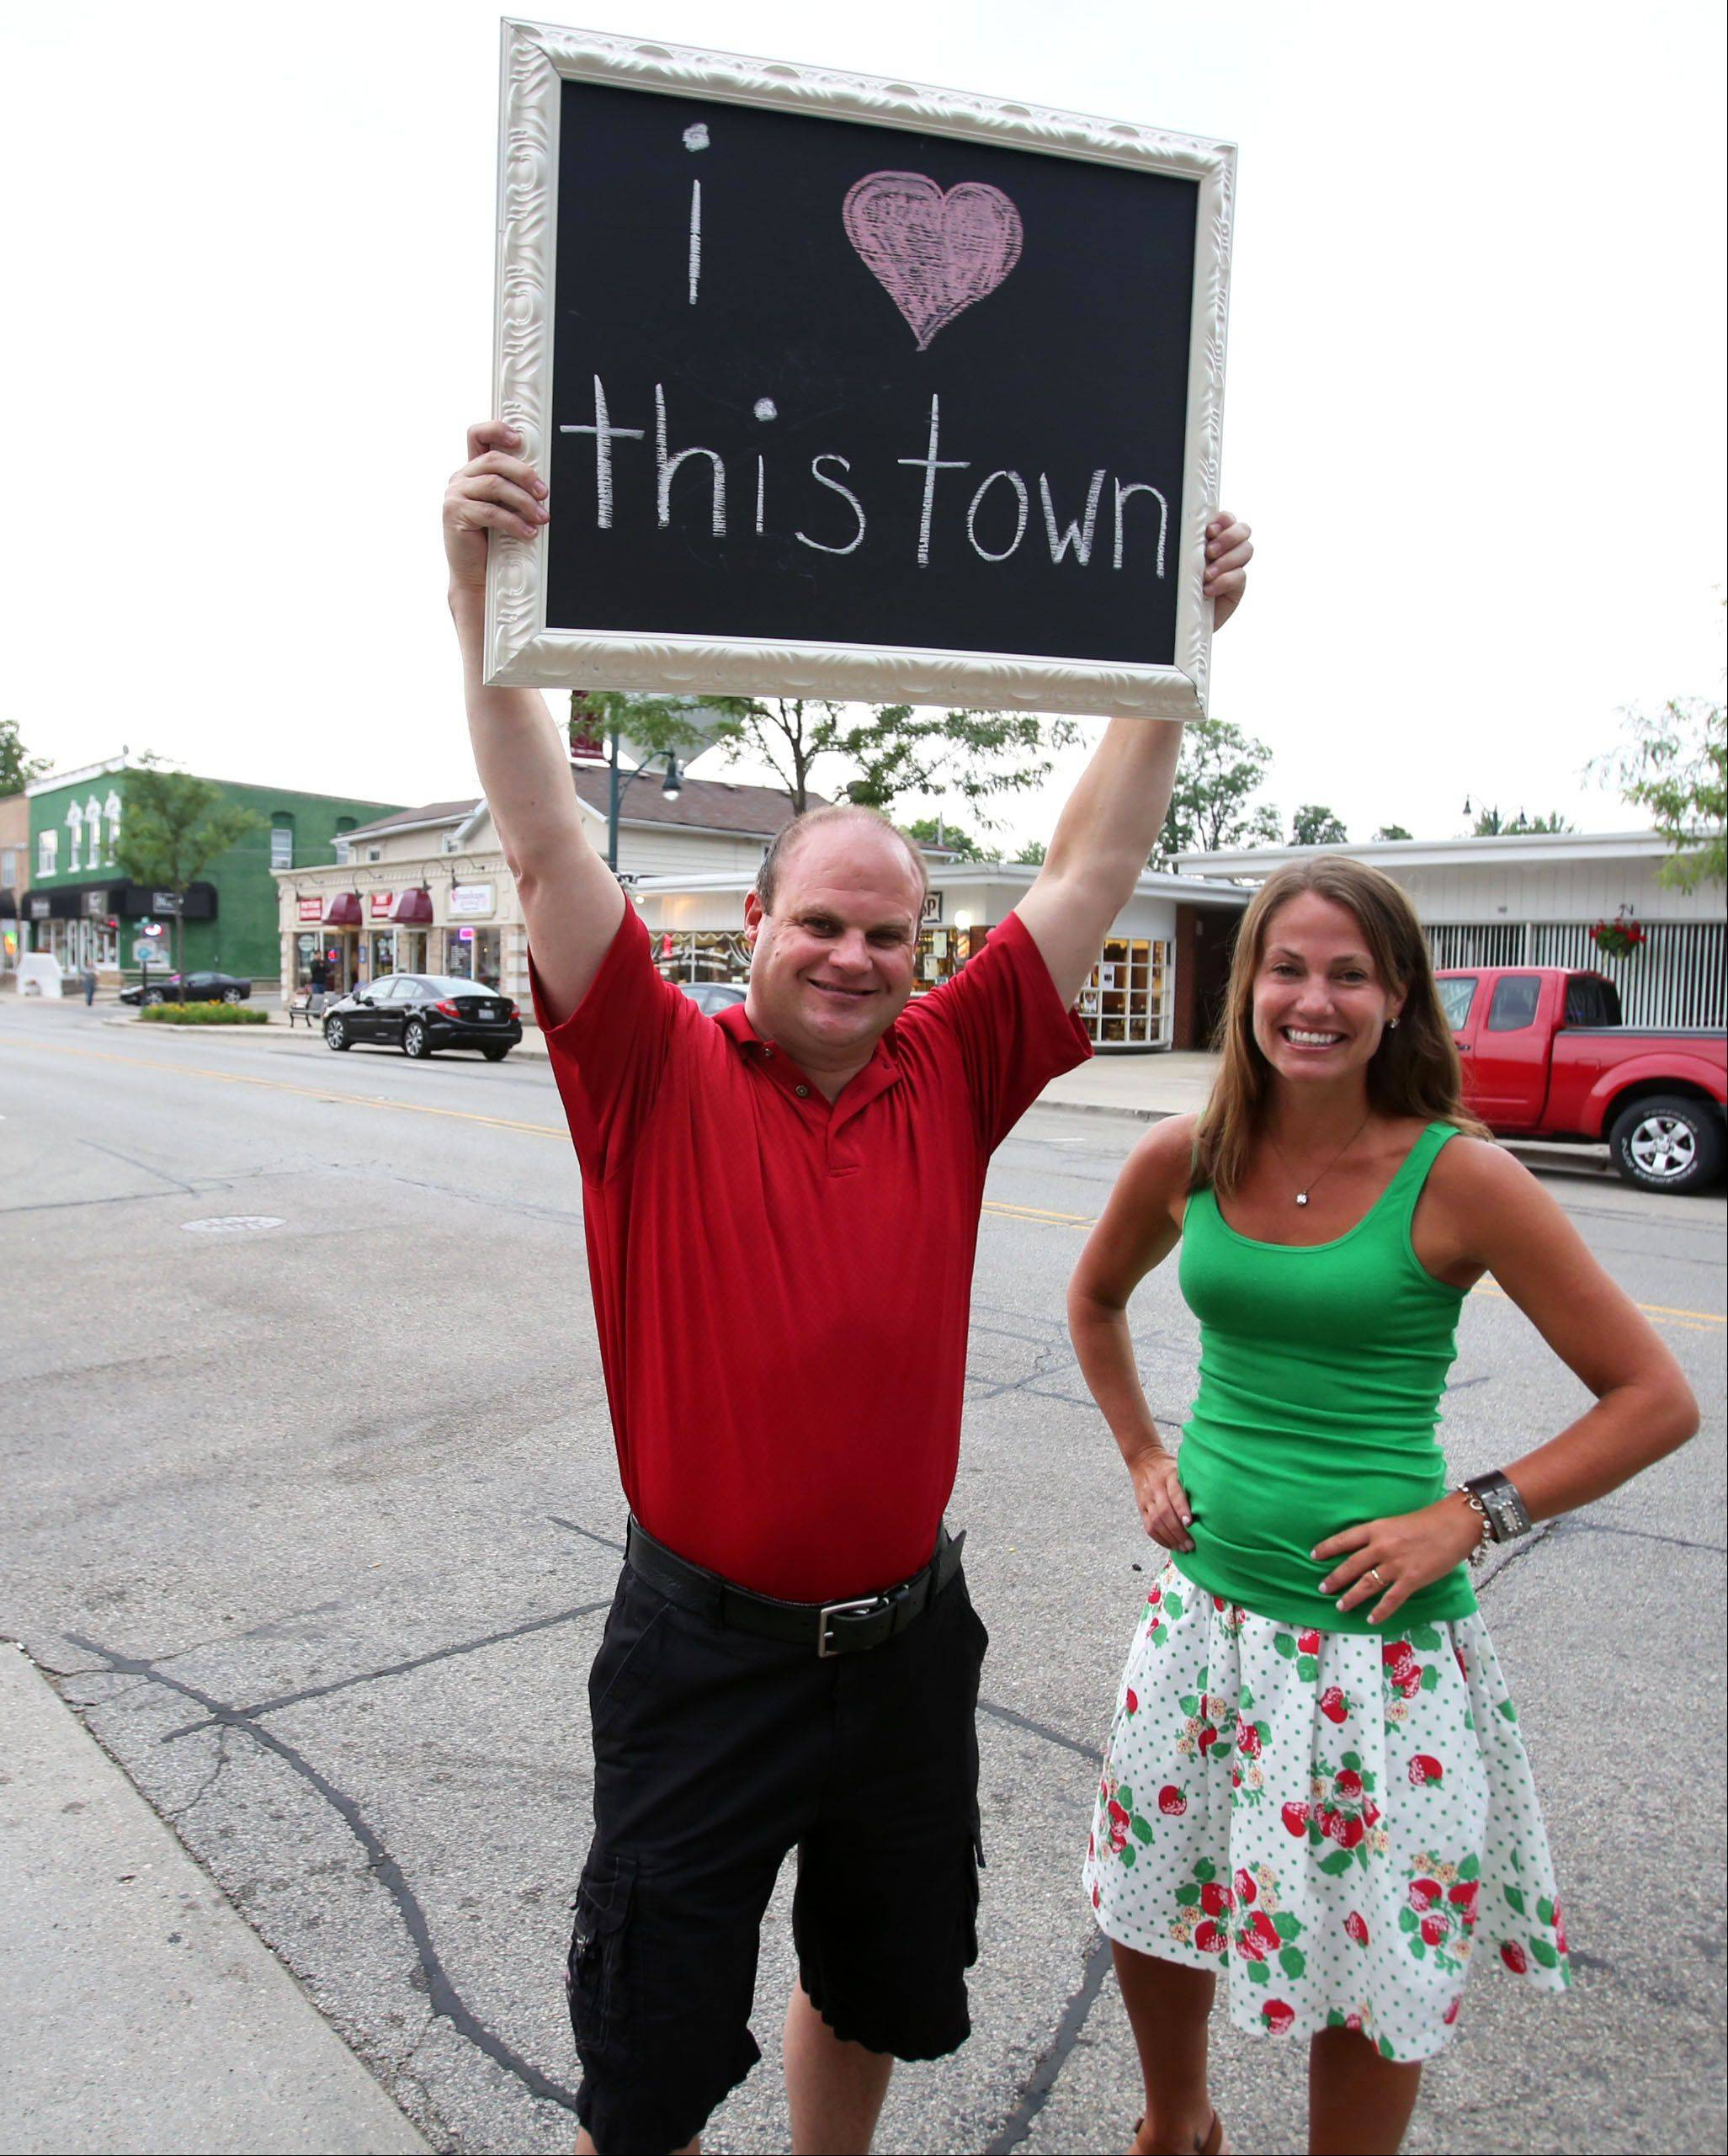 Business owners Randy Koch and Sara Carlson are preparing to film and produce a promotional video about Wauconda. They'll be shooting at several locations in town, including along the village's Main Street next weekend.